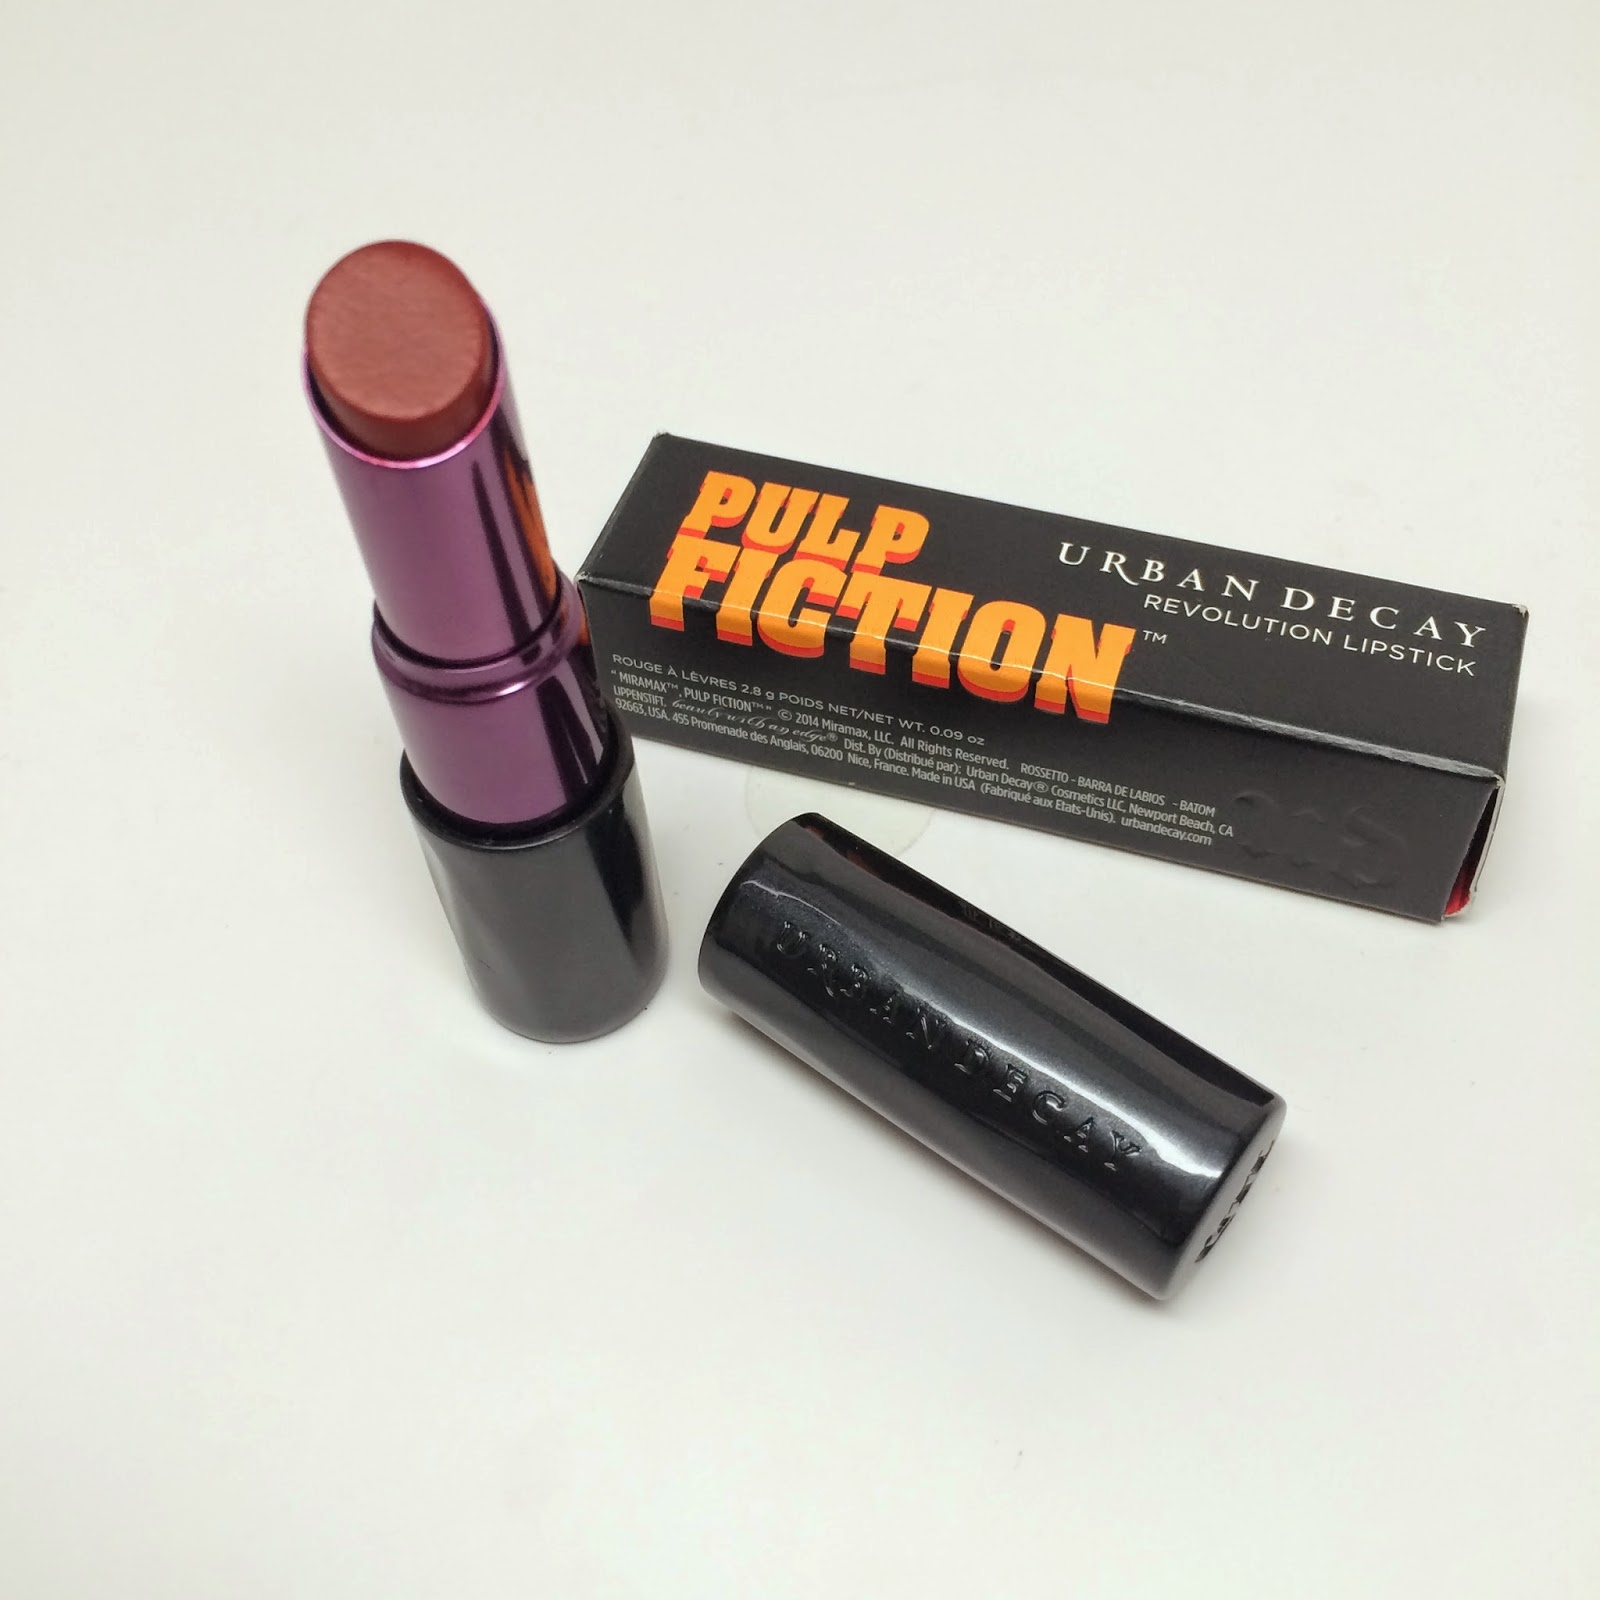 Urban Decay Revolution Lipstick 24/7 Glide On Lip Pencil, Pulp Fiction, Mrs Mia Wallace